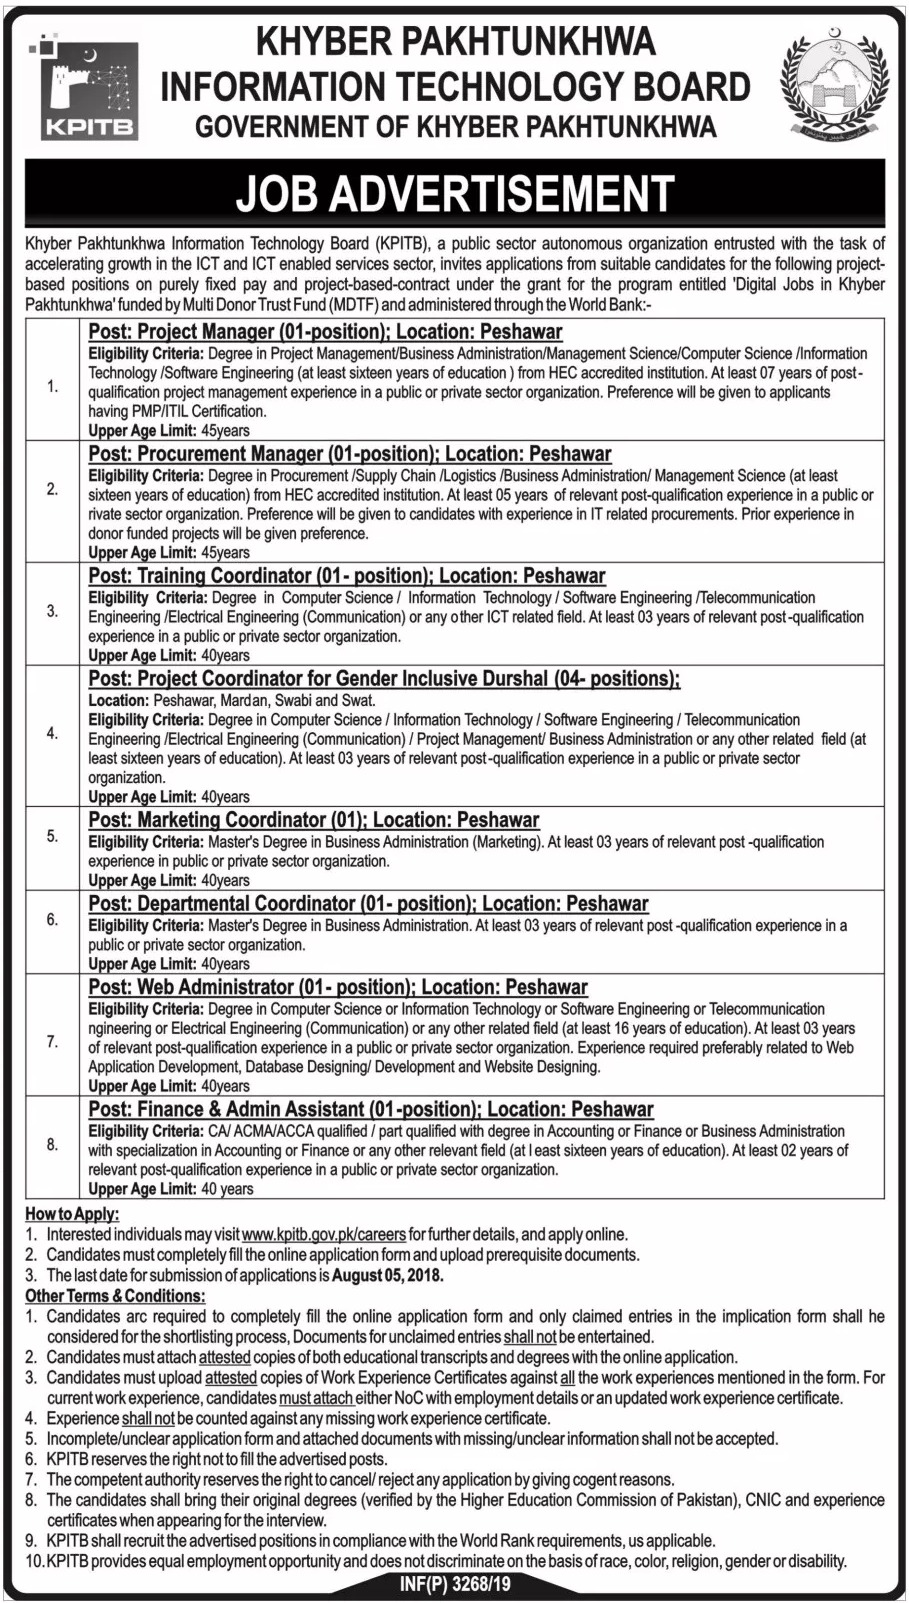 Khyber Pakhtunkhwa Information Technology Board KPITB Jobs 2019 Apply Online